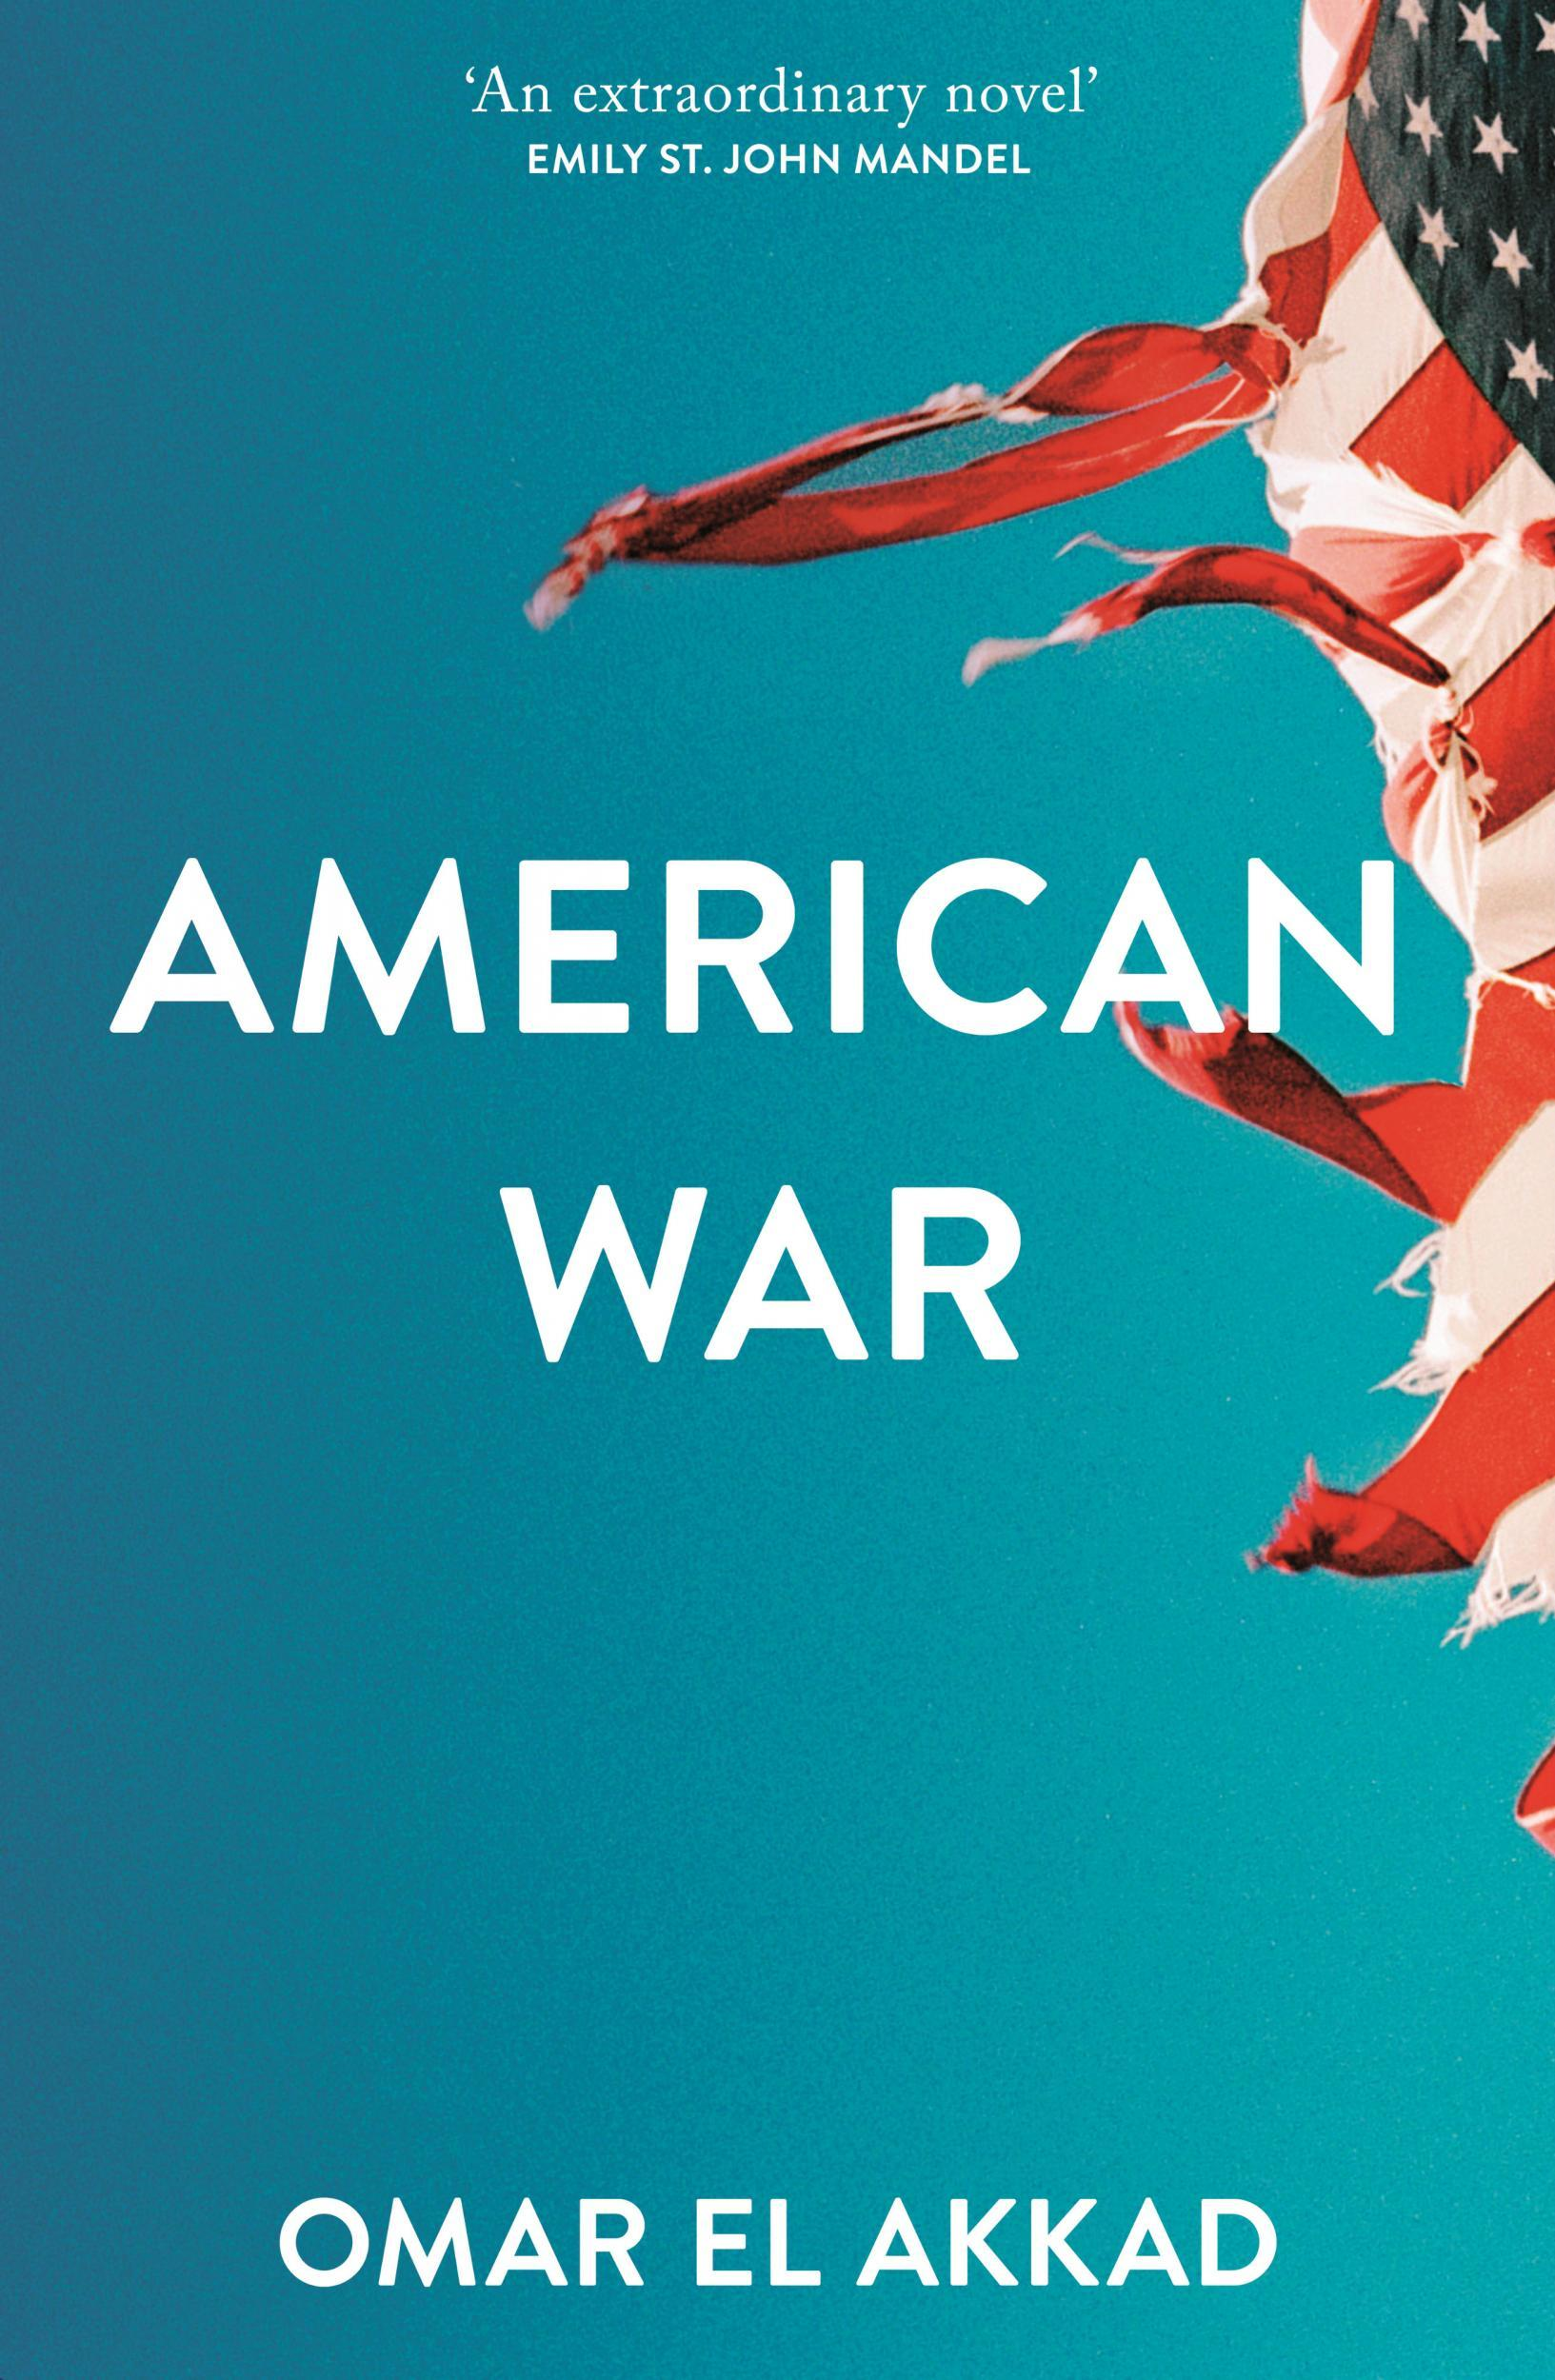 American War by Omar El Akkad, book review: Should be read as a